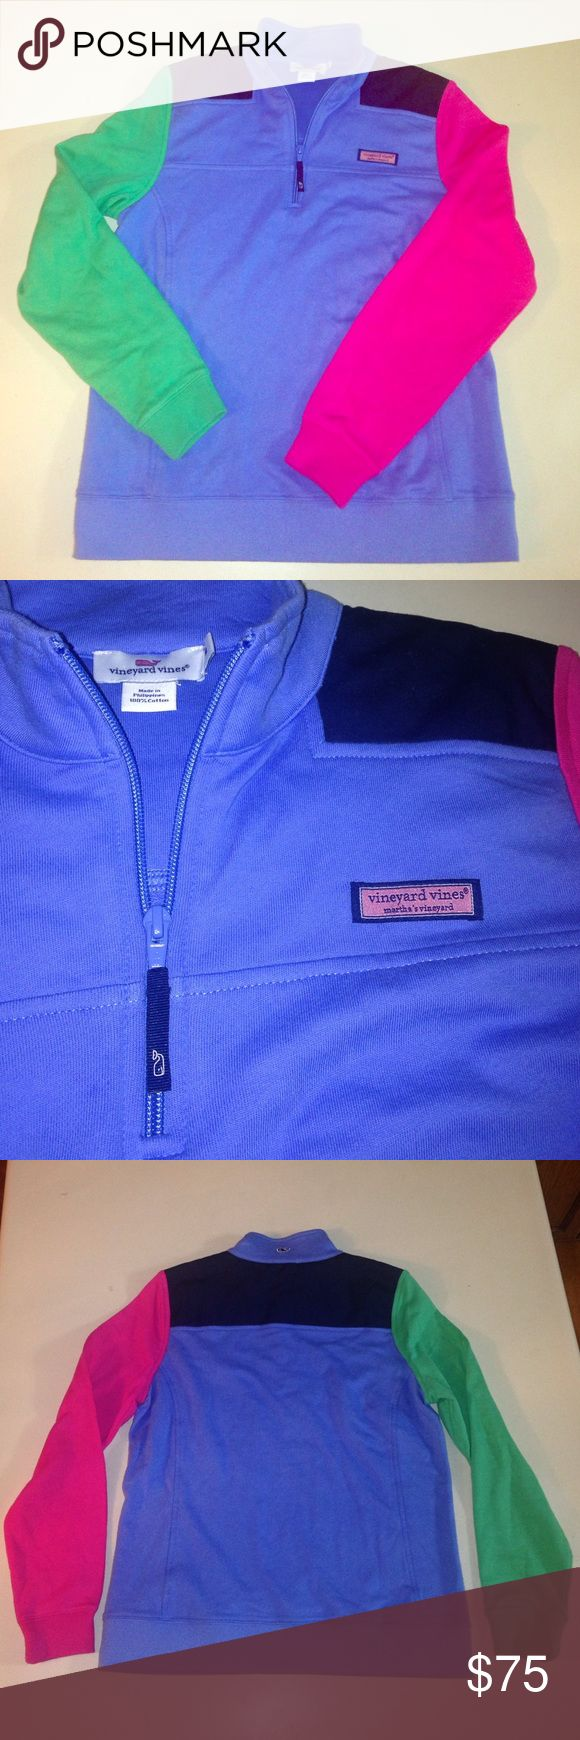 Vineyard Vines Quarter Zip Sweater Brand new, with out tags. Unique Vineyard Vines multicolor zip up sweatshirt. Awesome piece! Vineyard Vines Tops